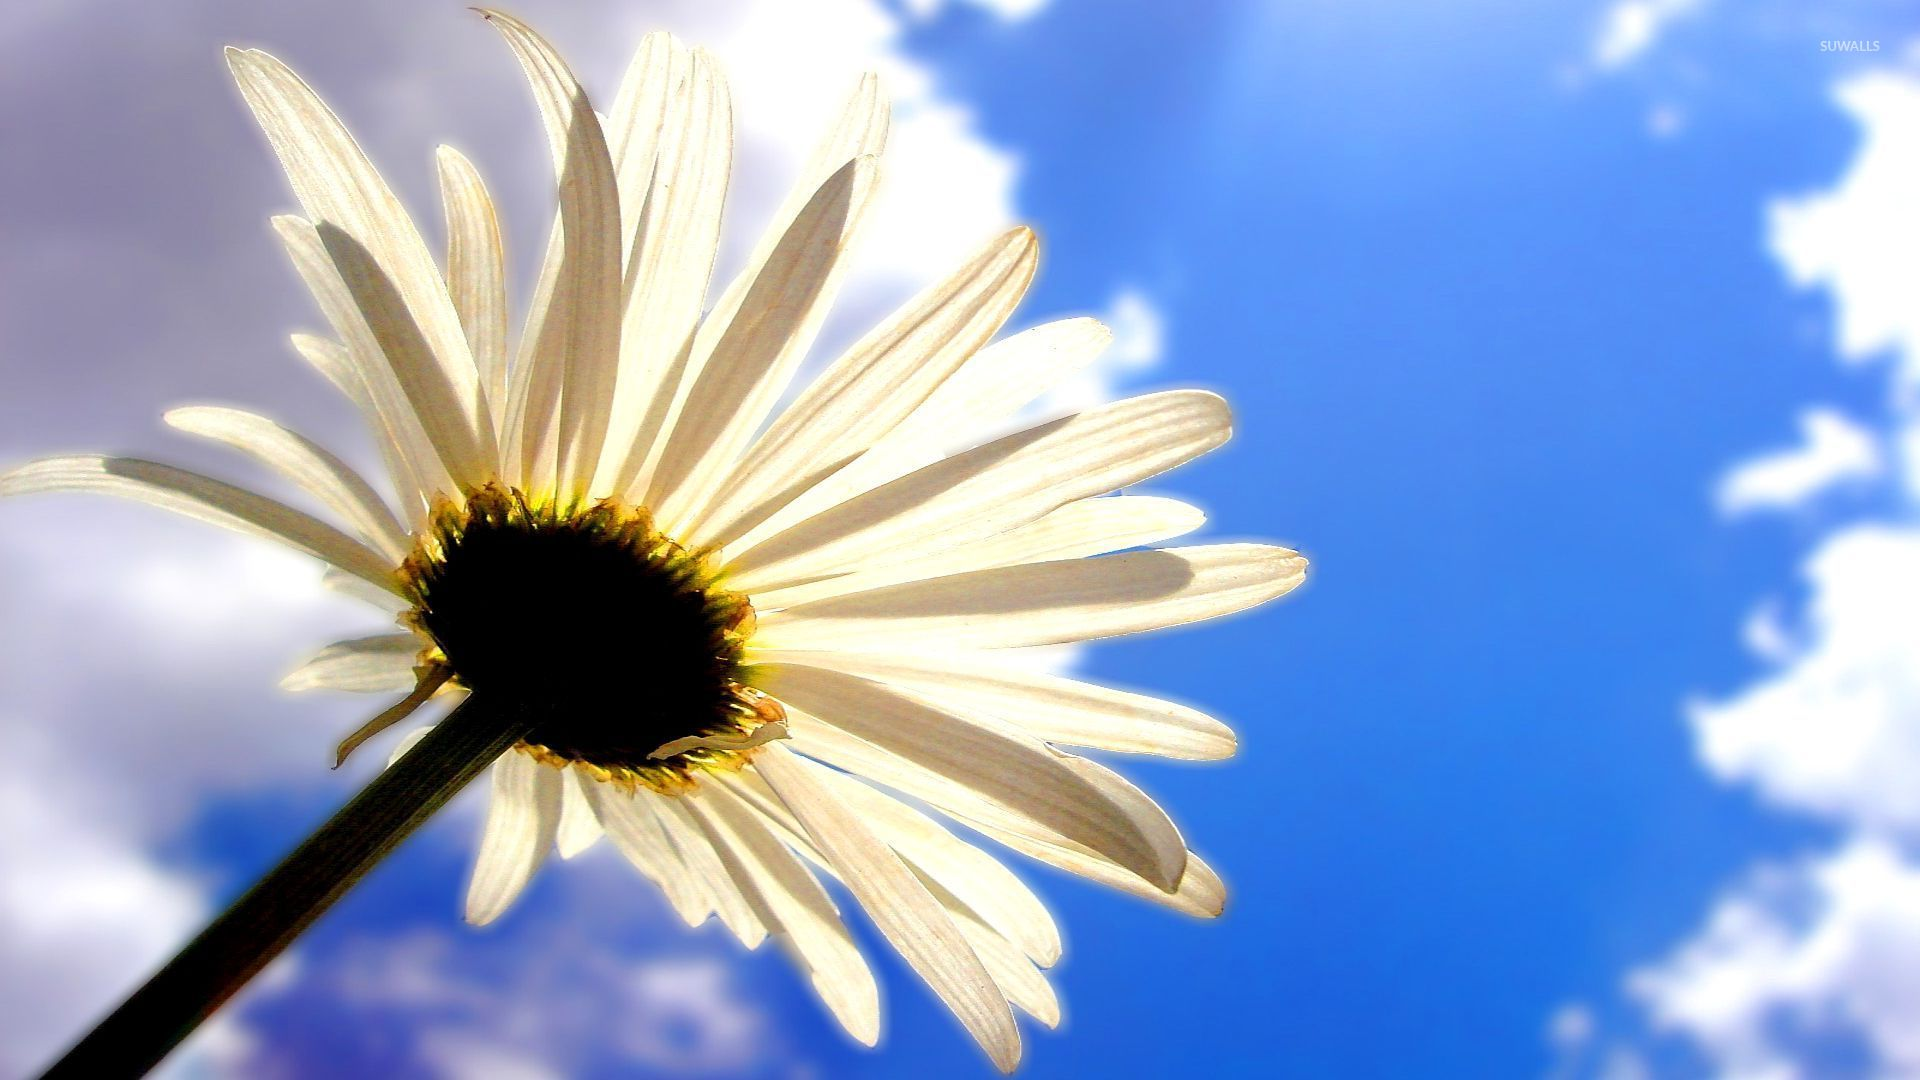 Daisy In The Clouds 52887 1920×1080 Wallpaper